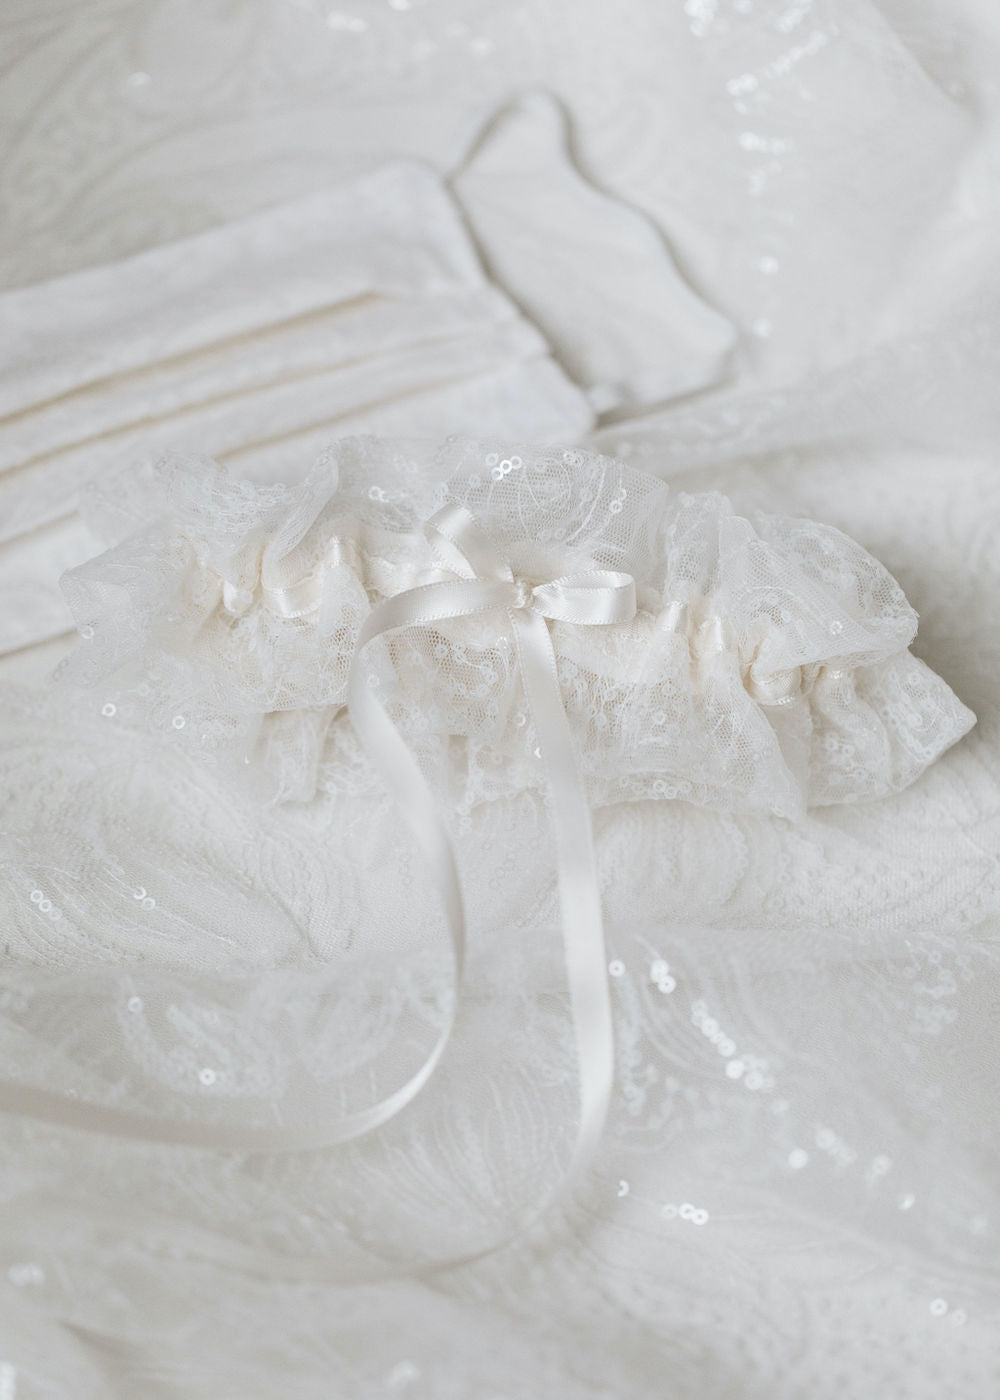 sparkle lace custom wedding garter & face mask from the bride's wedding dress fabric handmade heirloom by The Garter Girl